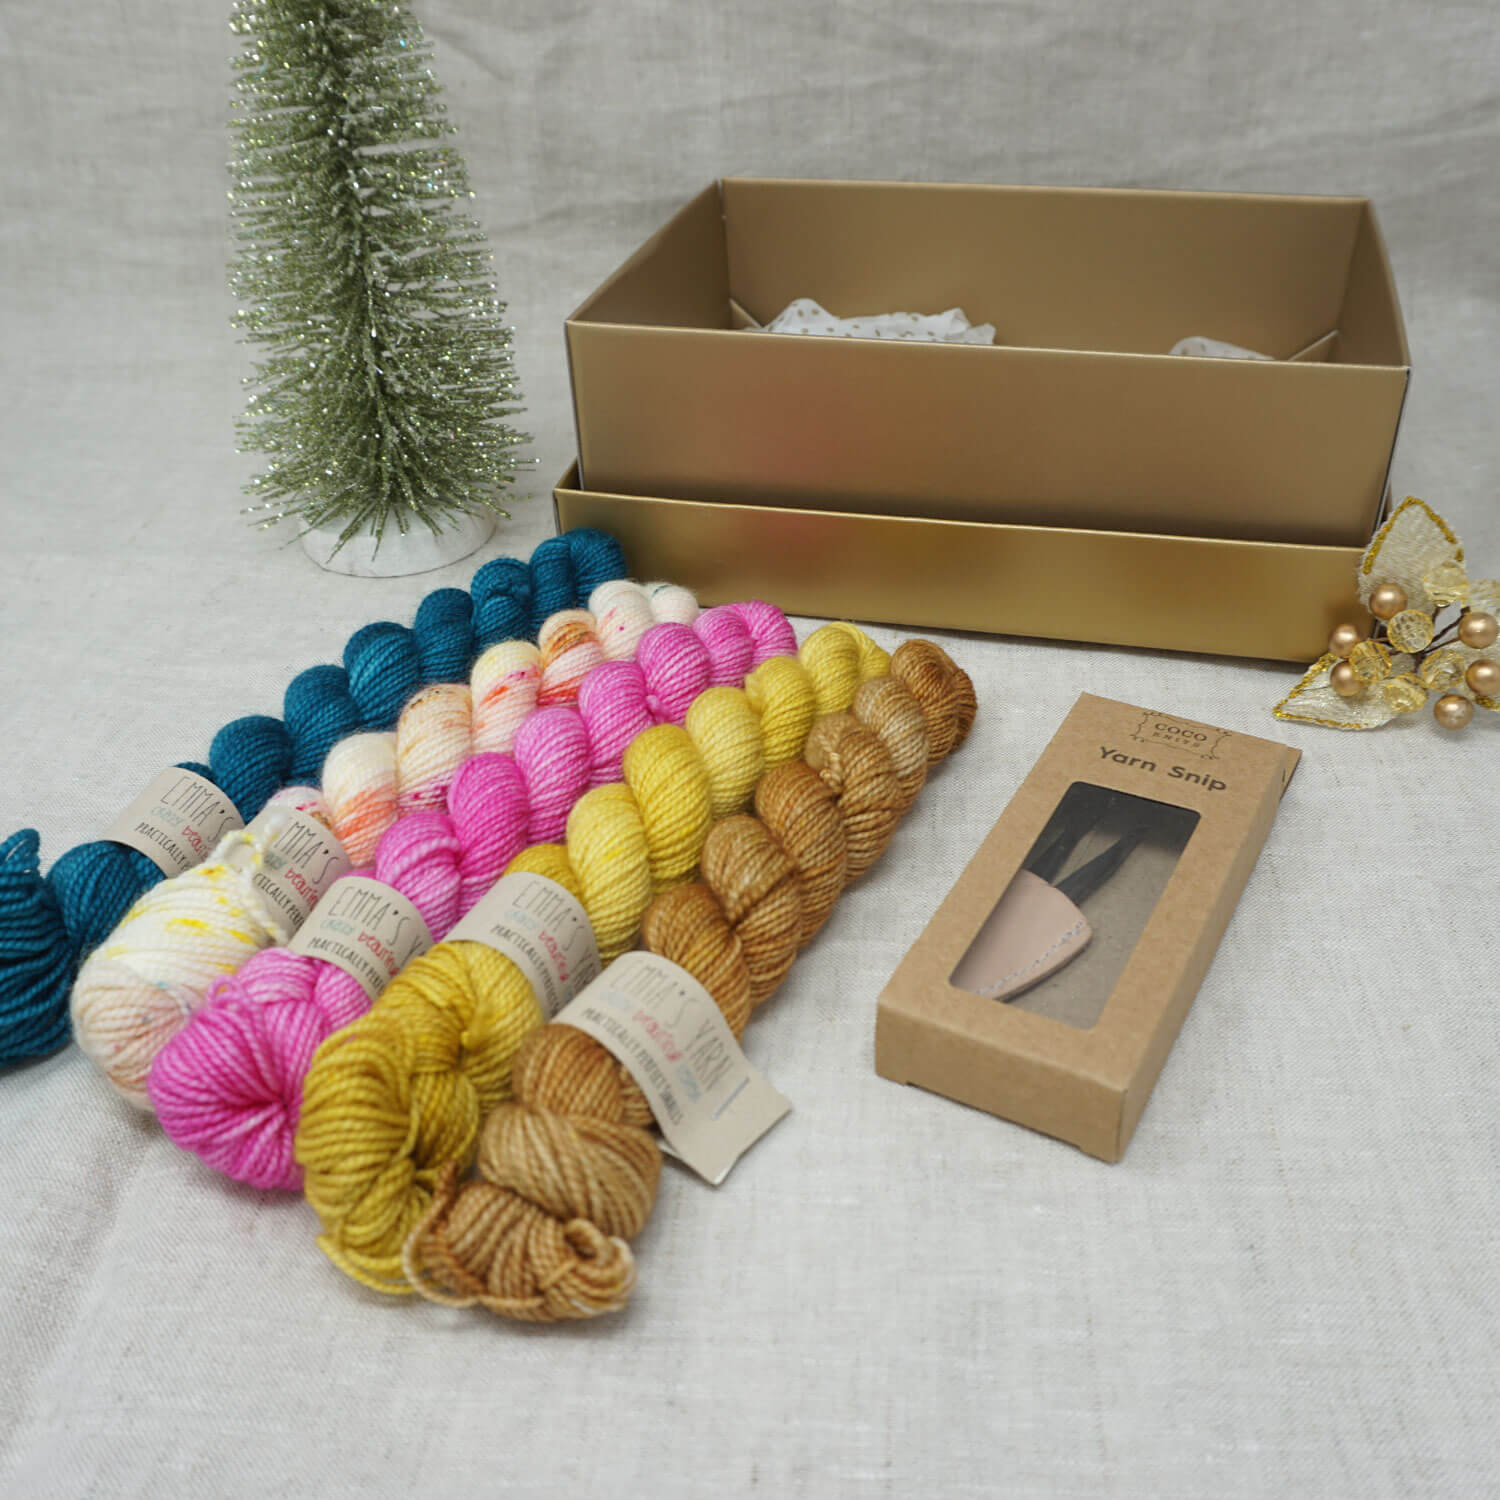 Christmas Knit or Crochet Gift 3 (5 x 20g & Cocoknits Yarn Snips with Bohemian Market, Buttonwood, Barbie Girl, Wish you were Beer and Tealicious Practically Perfect Smalls Emma's Yarn